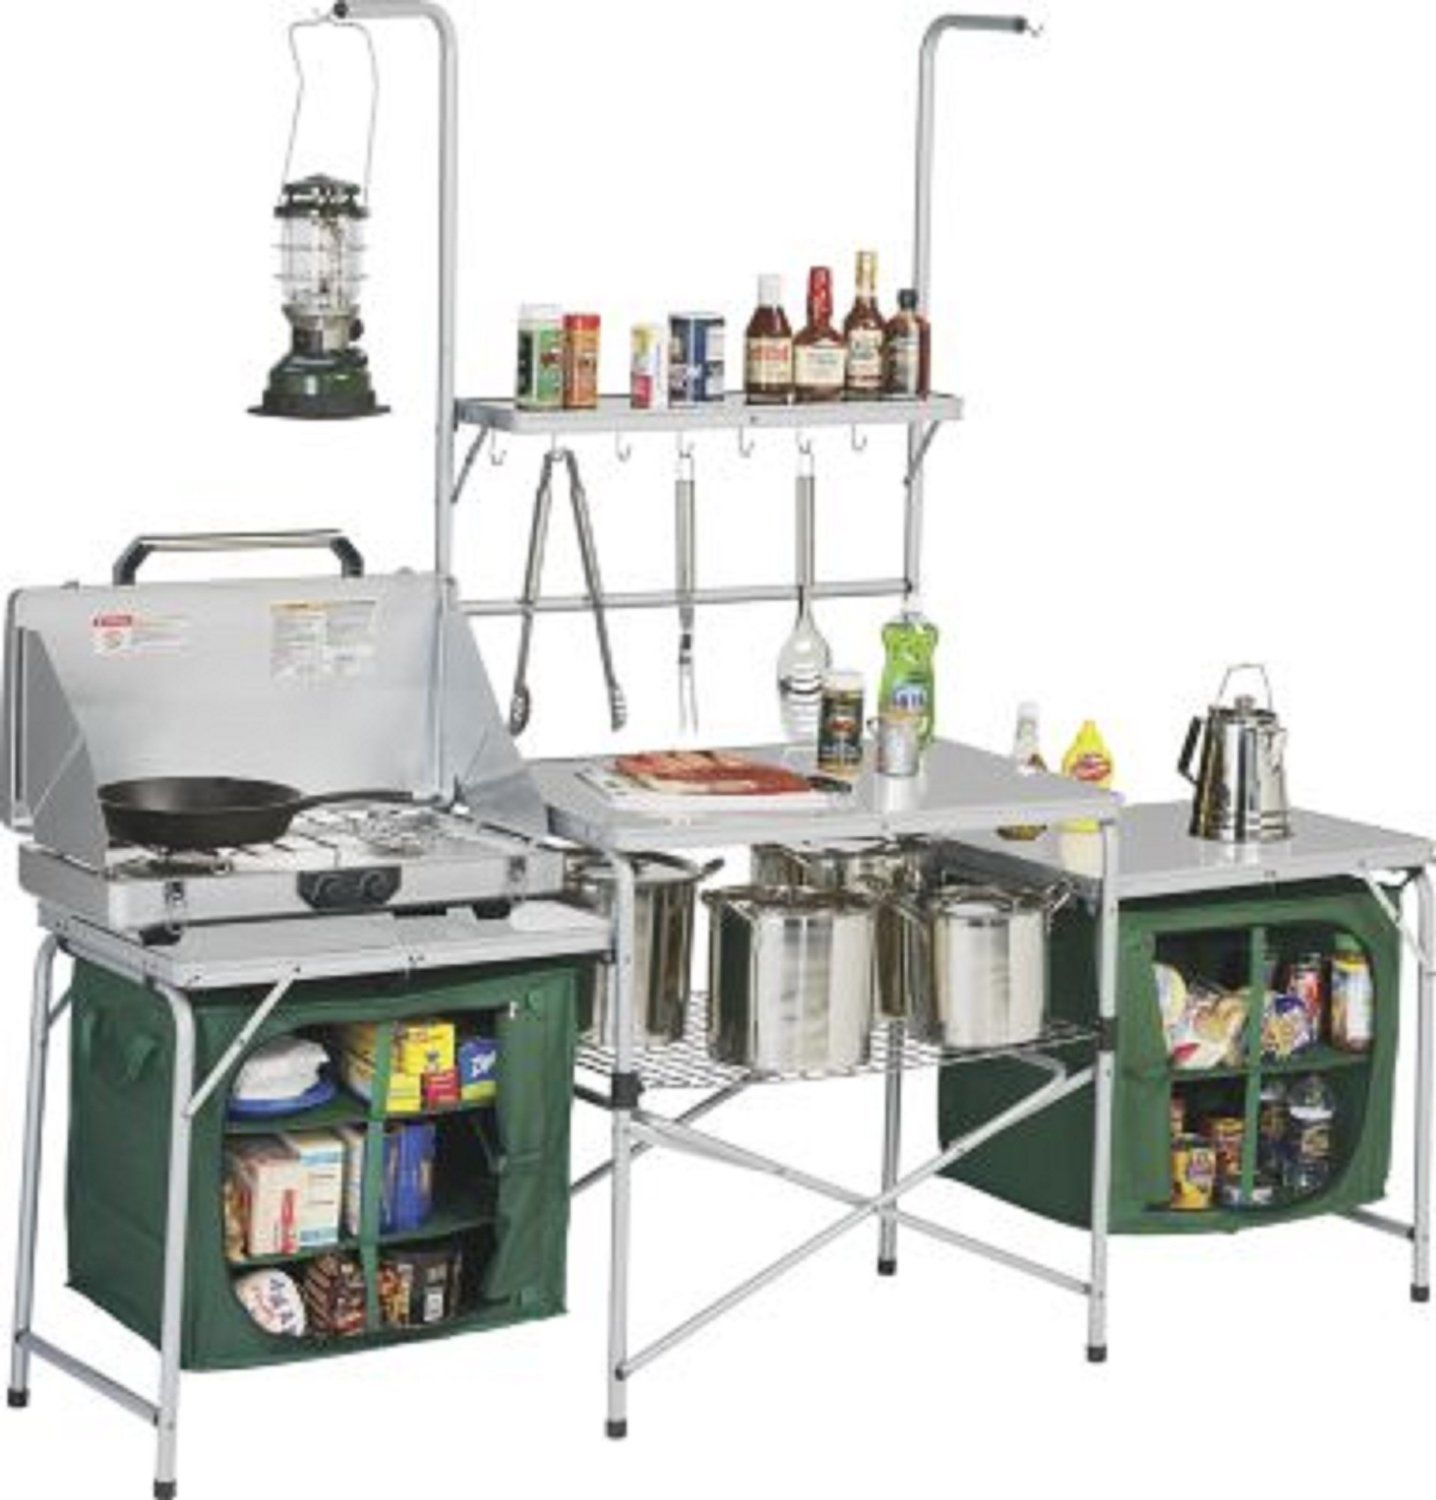 250 amazon outdoor deluxe portable camping kitchen with pvc 250 amazon outdoor deluxe portable camping kitchen with pvc sink drain lets you create meals in any environment sports outdoors workwithnaturefo